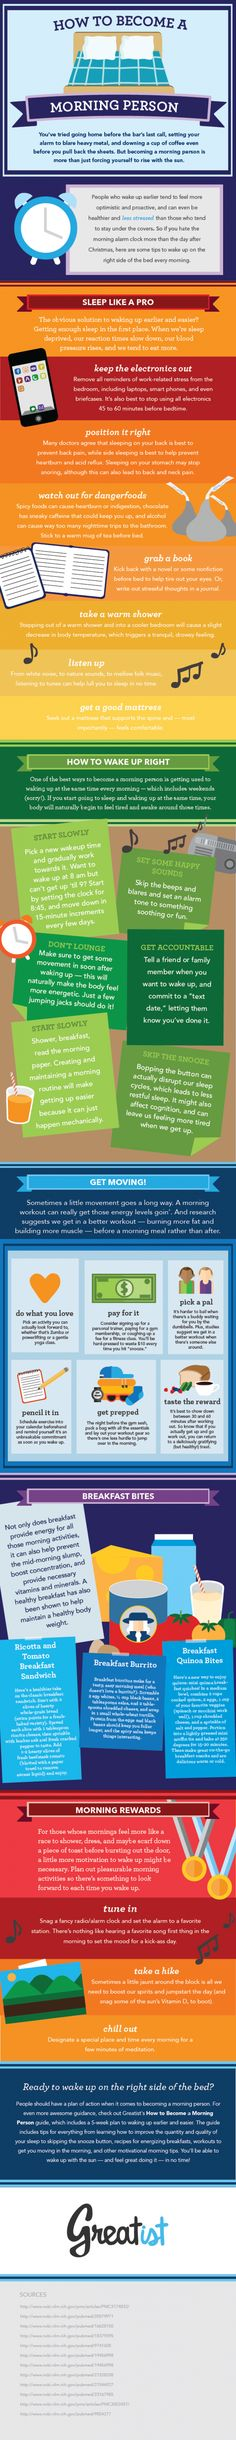 Are you a morning person? If not, here is an #infographic about becoming a morning person. #health #sleep